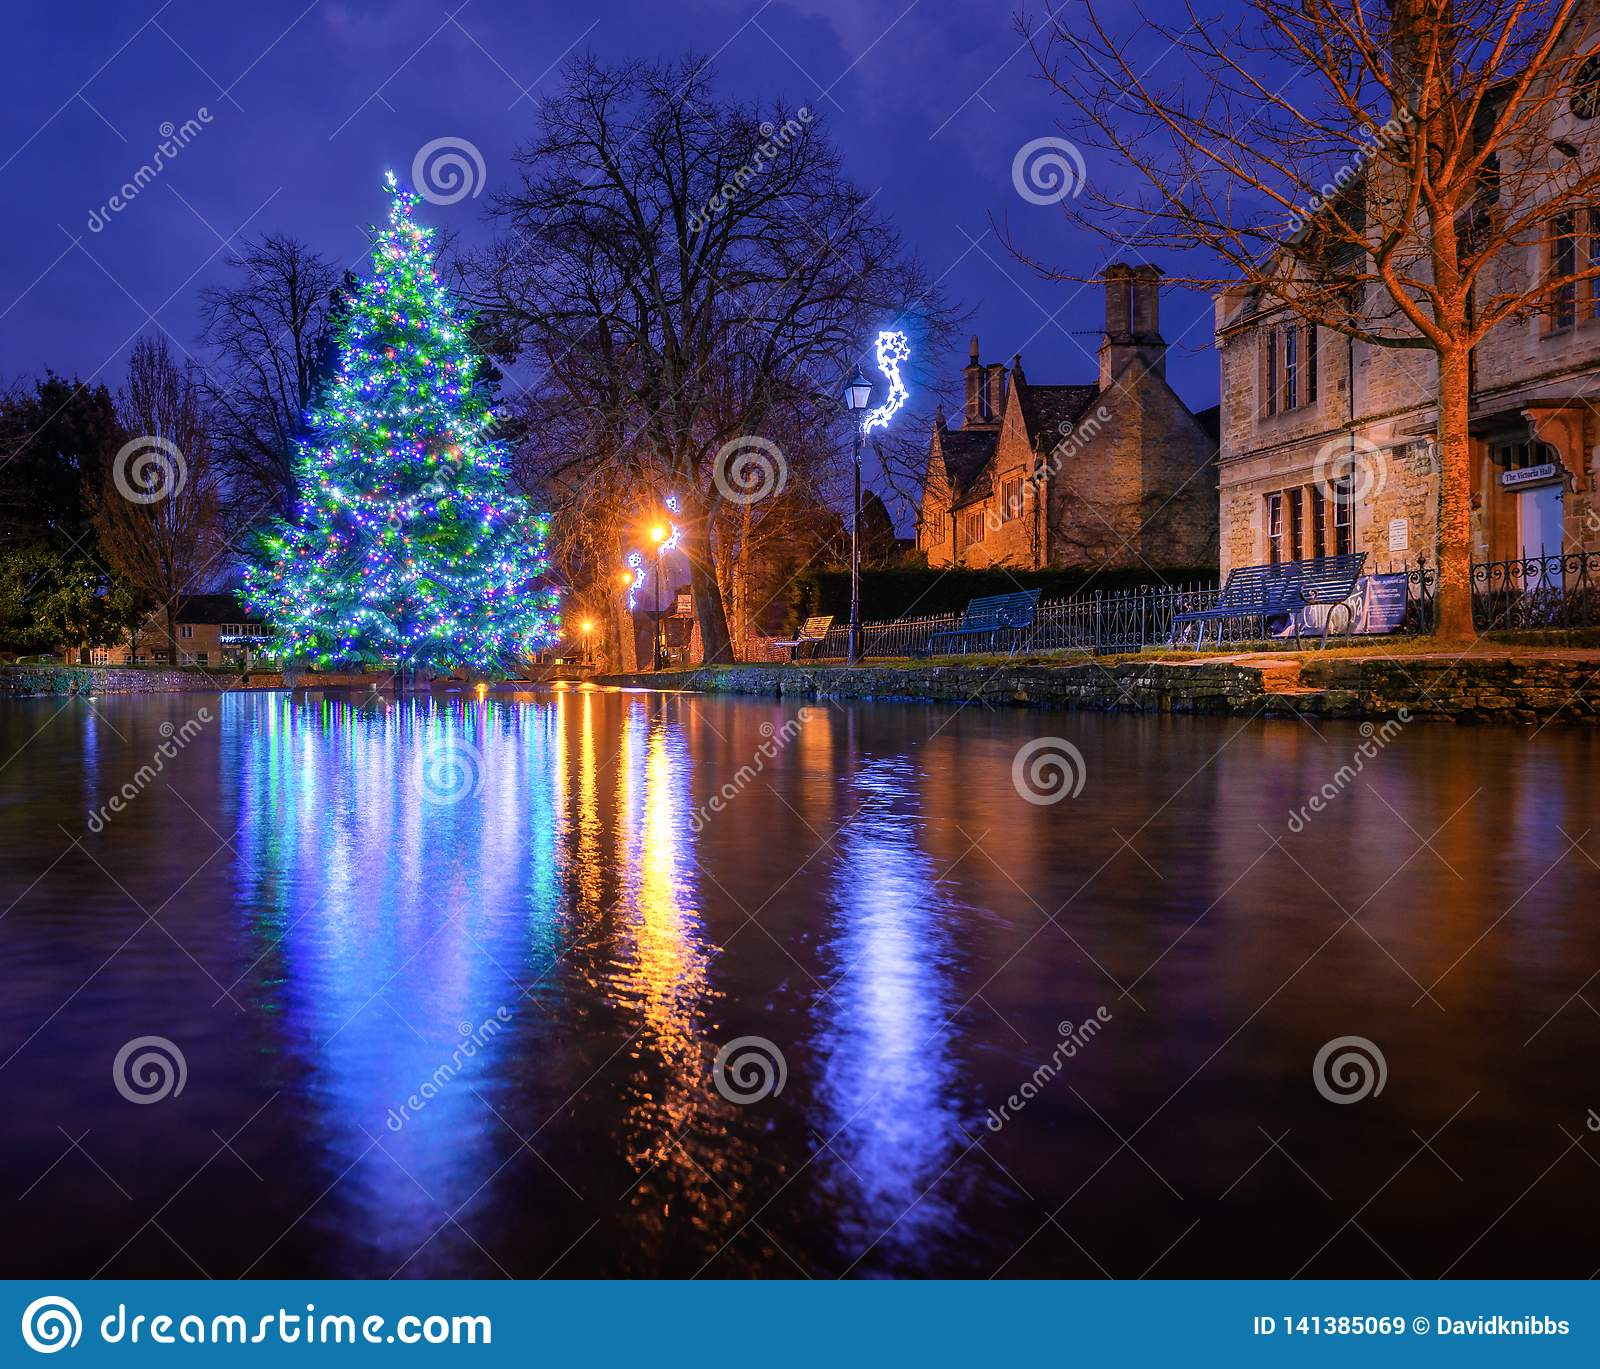 Bourton On The Water Christmas Tree In The River Windrush